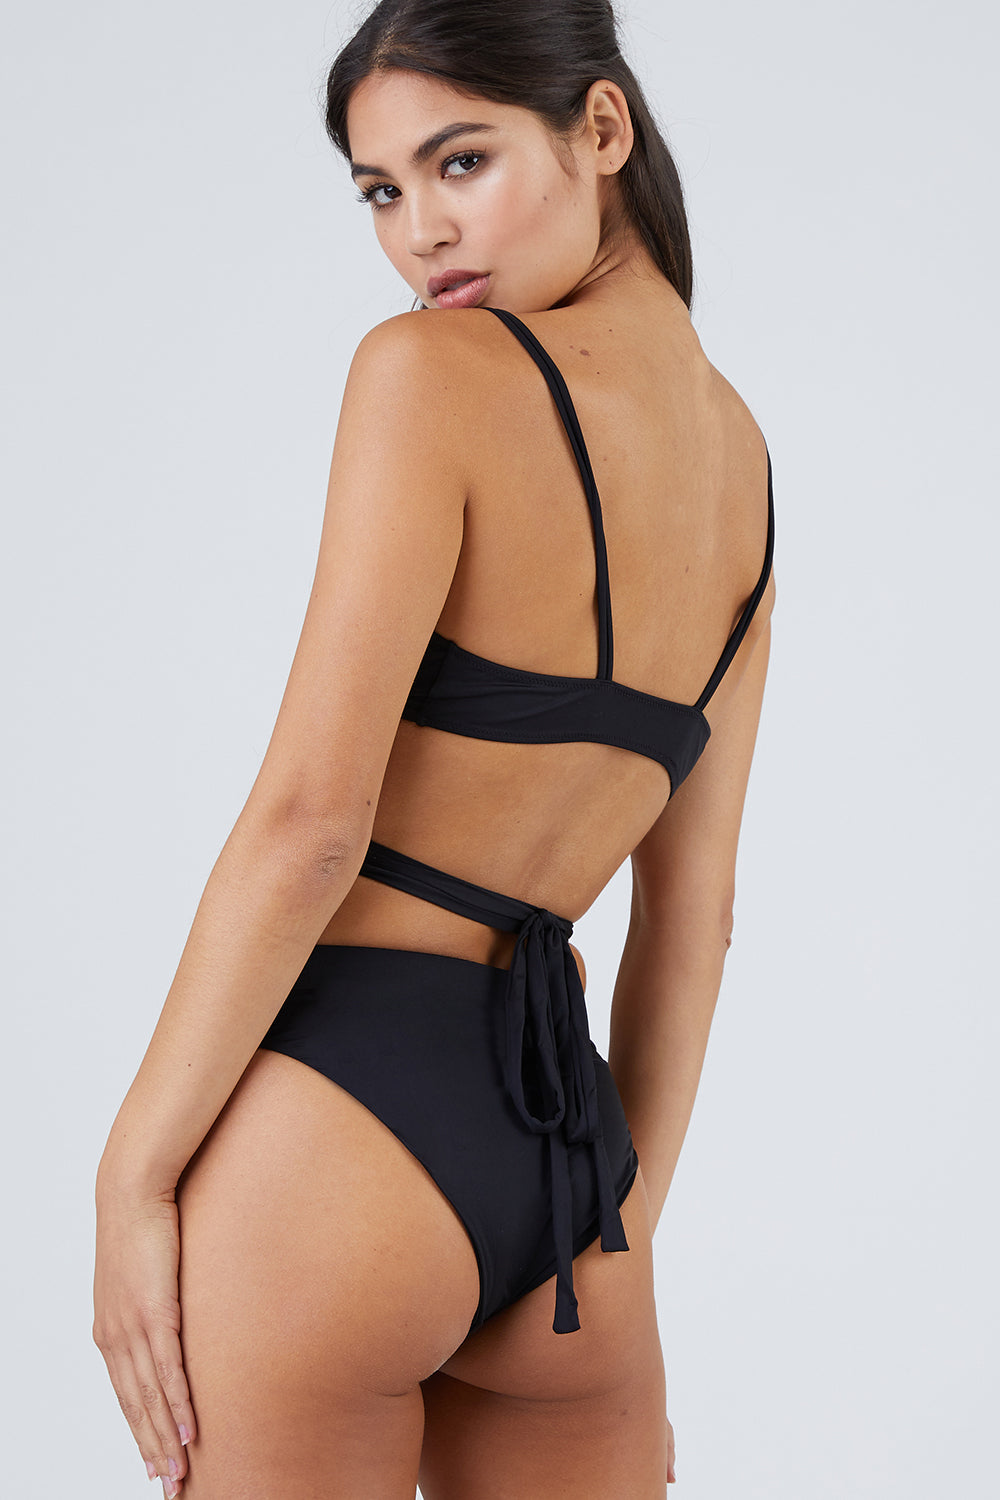 3ea481ec30470 MONICA HANSEN BEACHWEAR That 90's Vibe High Waisted Bikini Bottom - Black  Bikini Bottom | Black ...